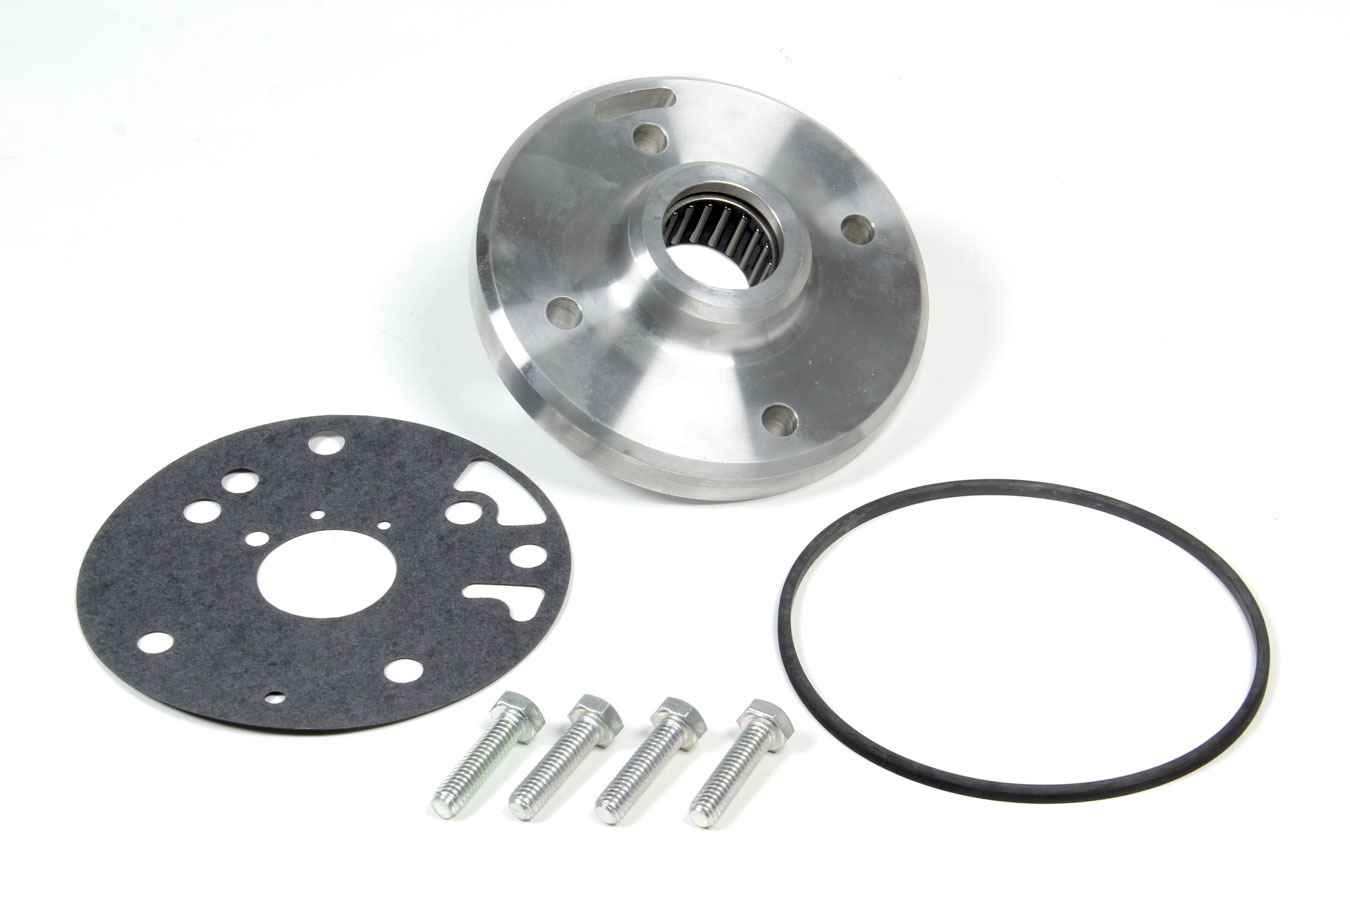 Tsr Racing Products P/G Roller Governor Support